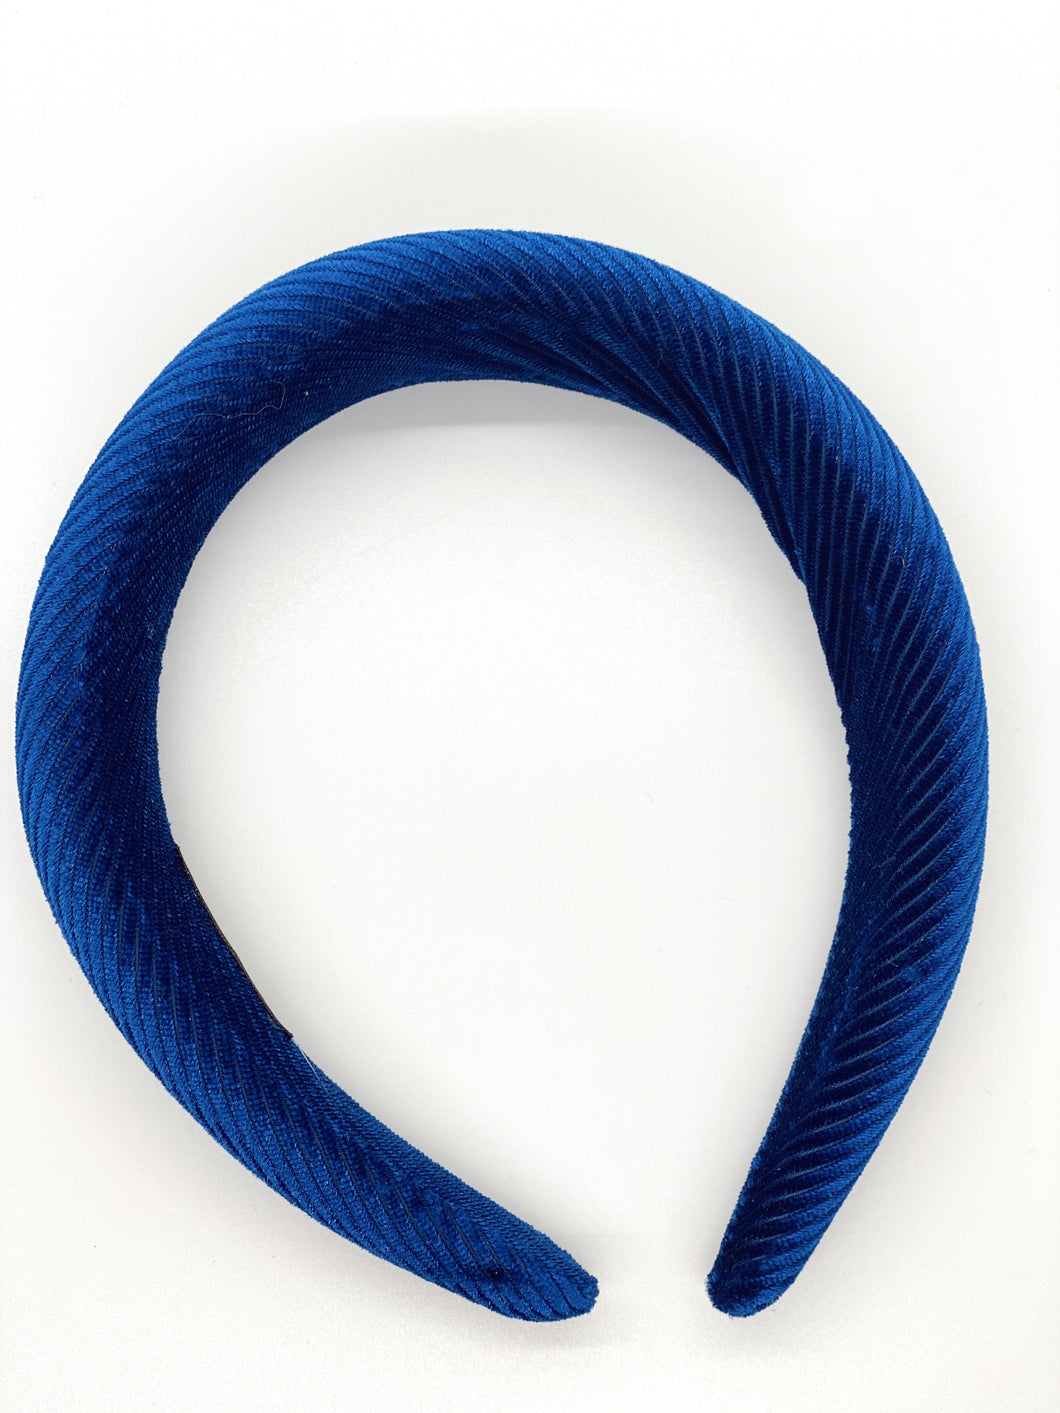 Ribbed Blue Velvet Headband